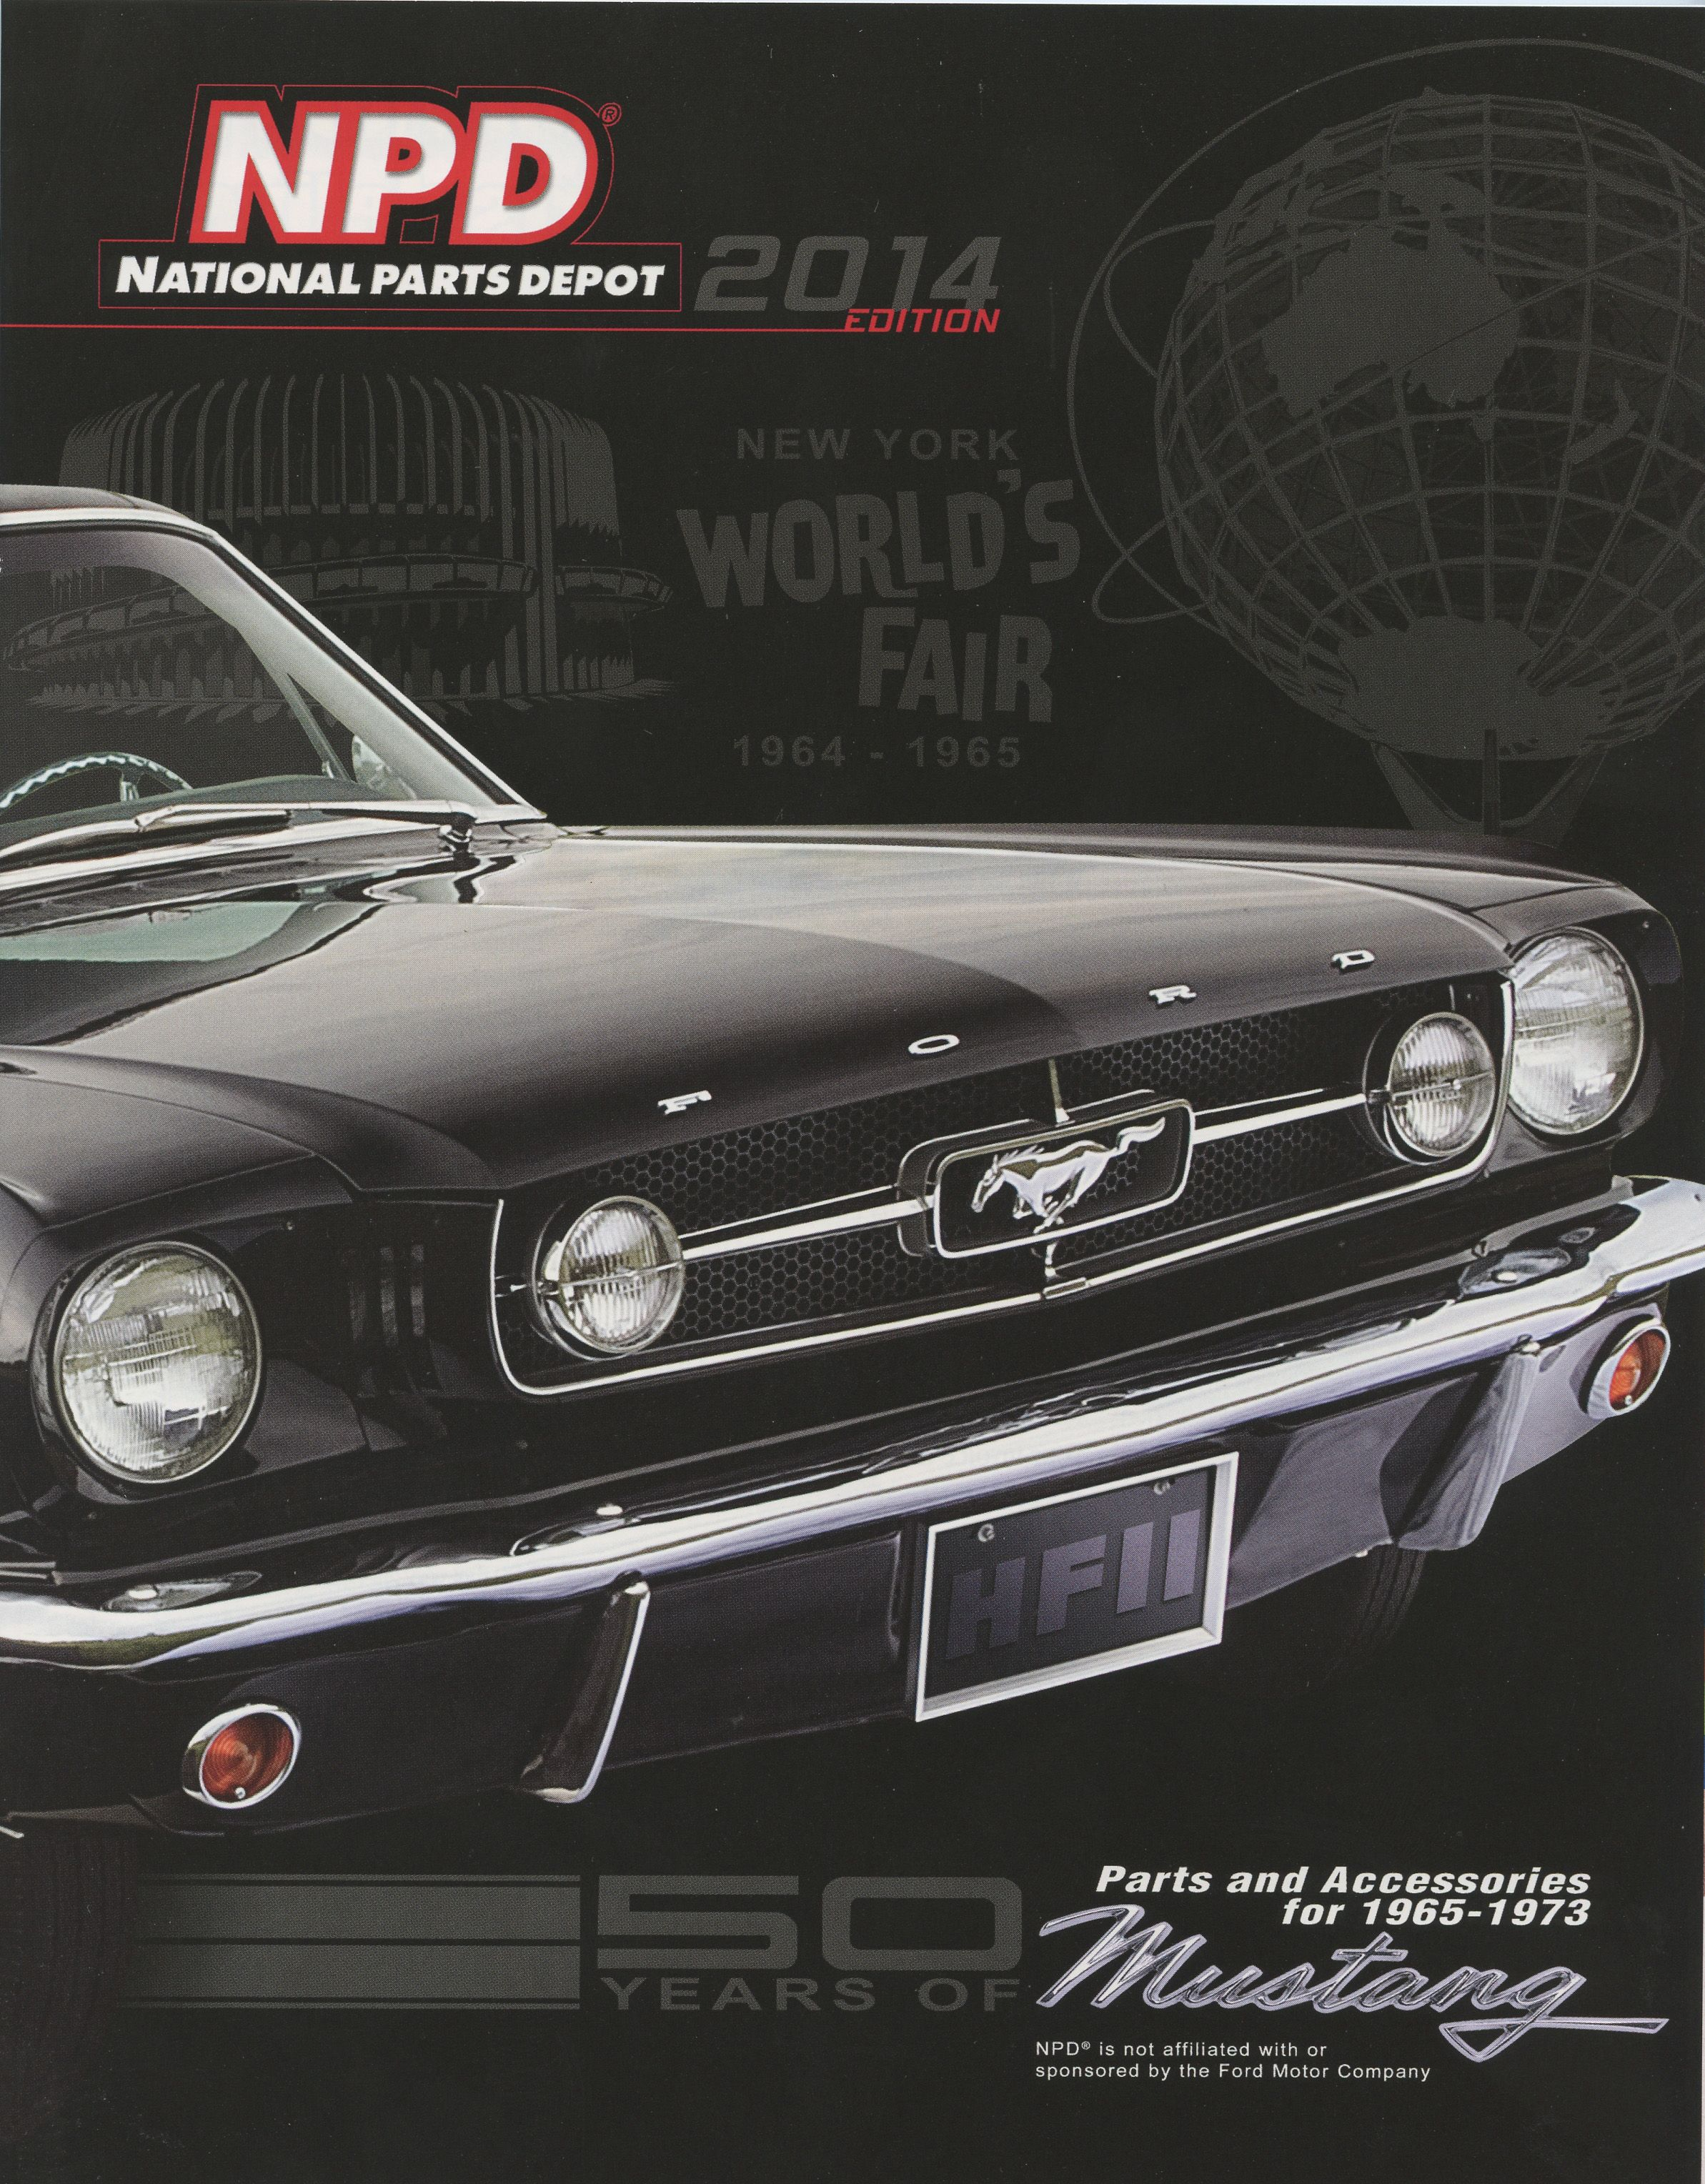 2014 edition of national parts depot classic mustang catalog covers 1964 73 models